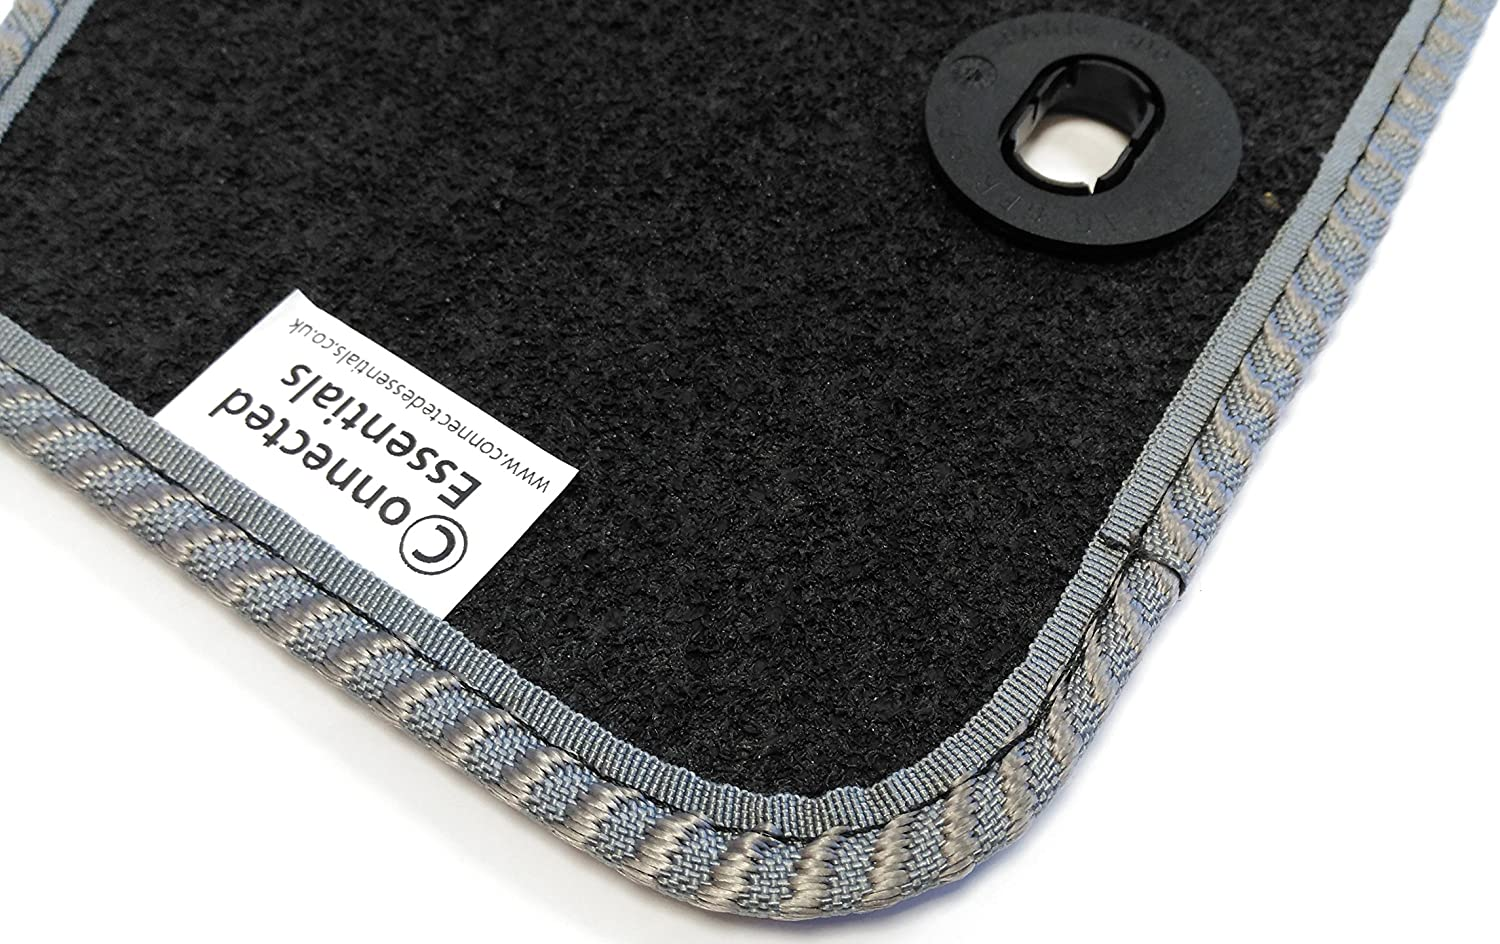 Connected Essentials 5033668 Grey with Red Trim Tailored Heavy Duty Custom Fit Car Mats Kia Picanto 2011